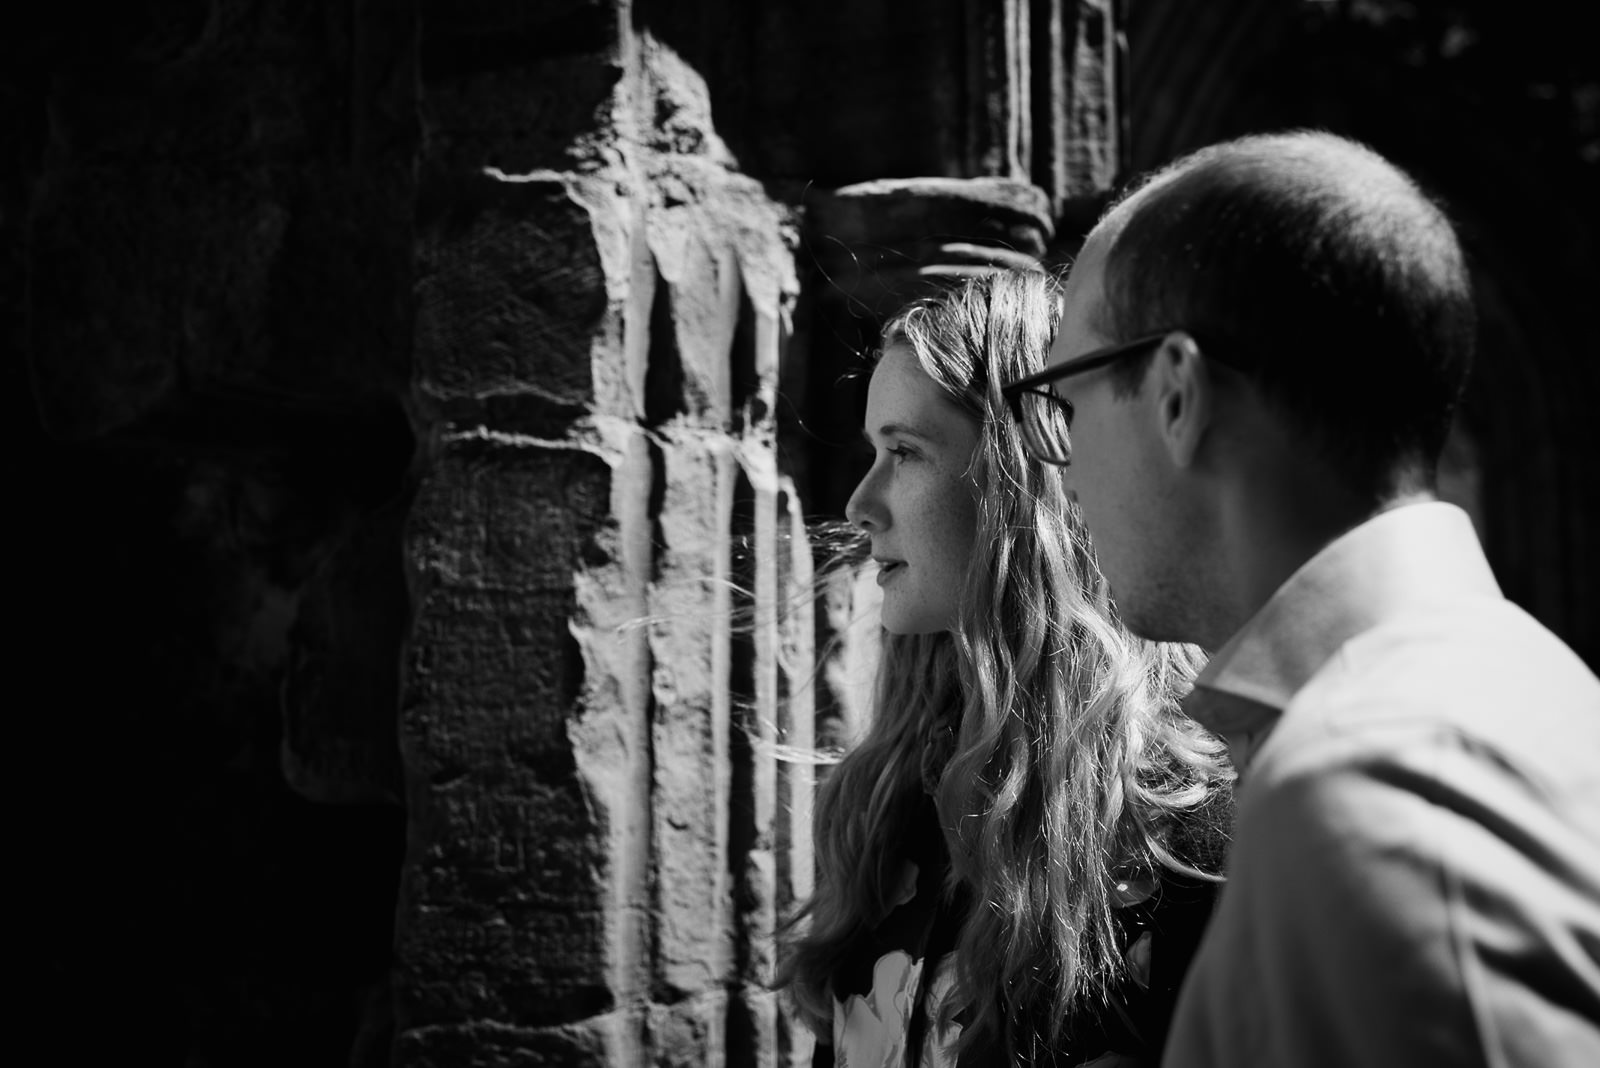 Intense black and white photograph of Bride & Groom looking into the distance